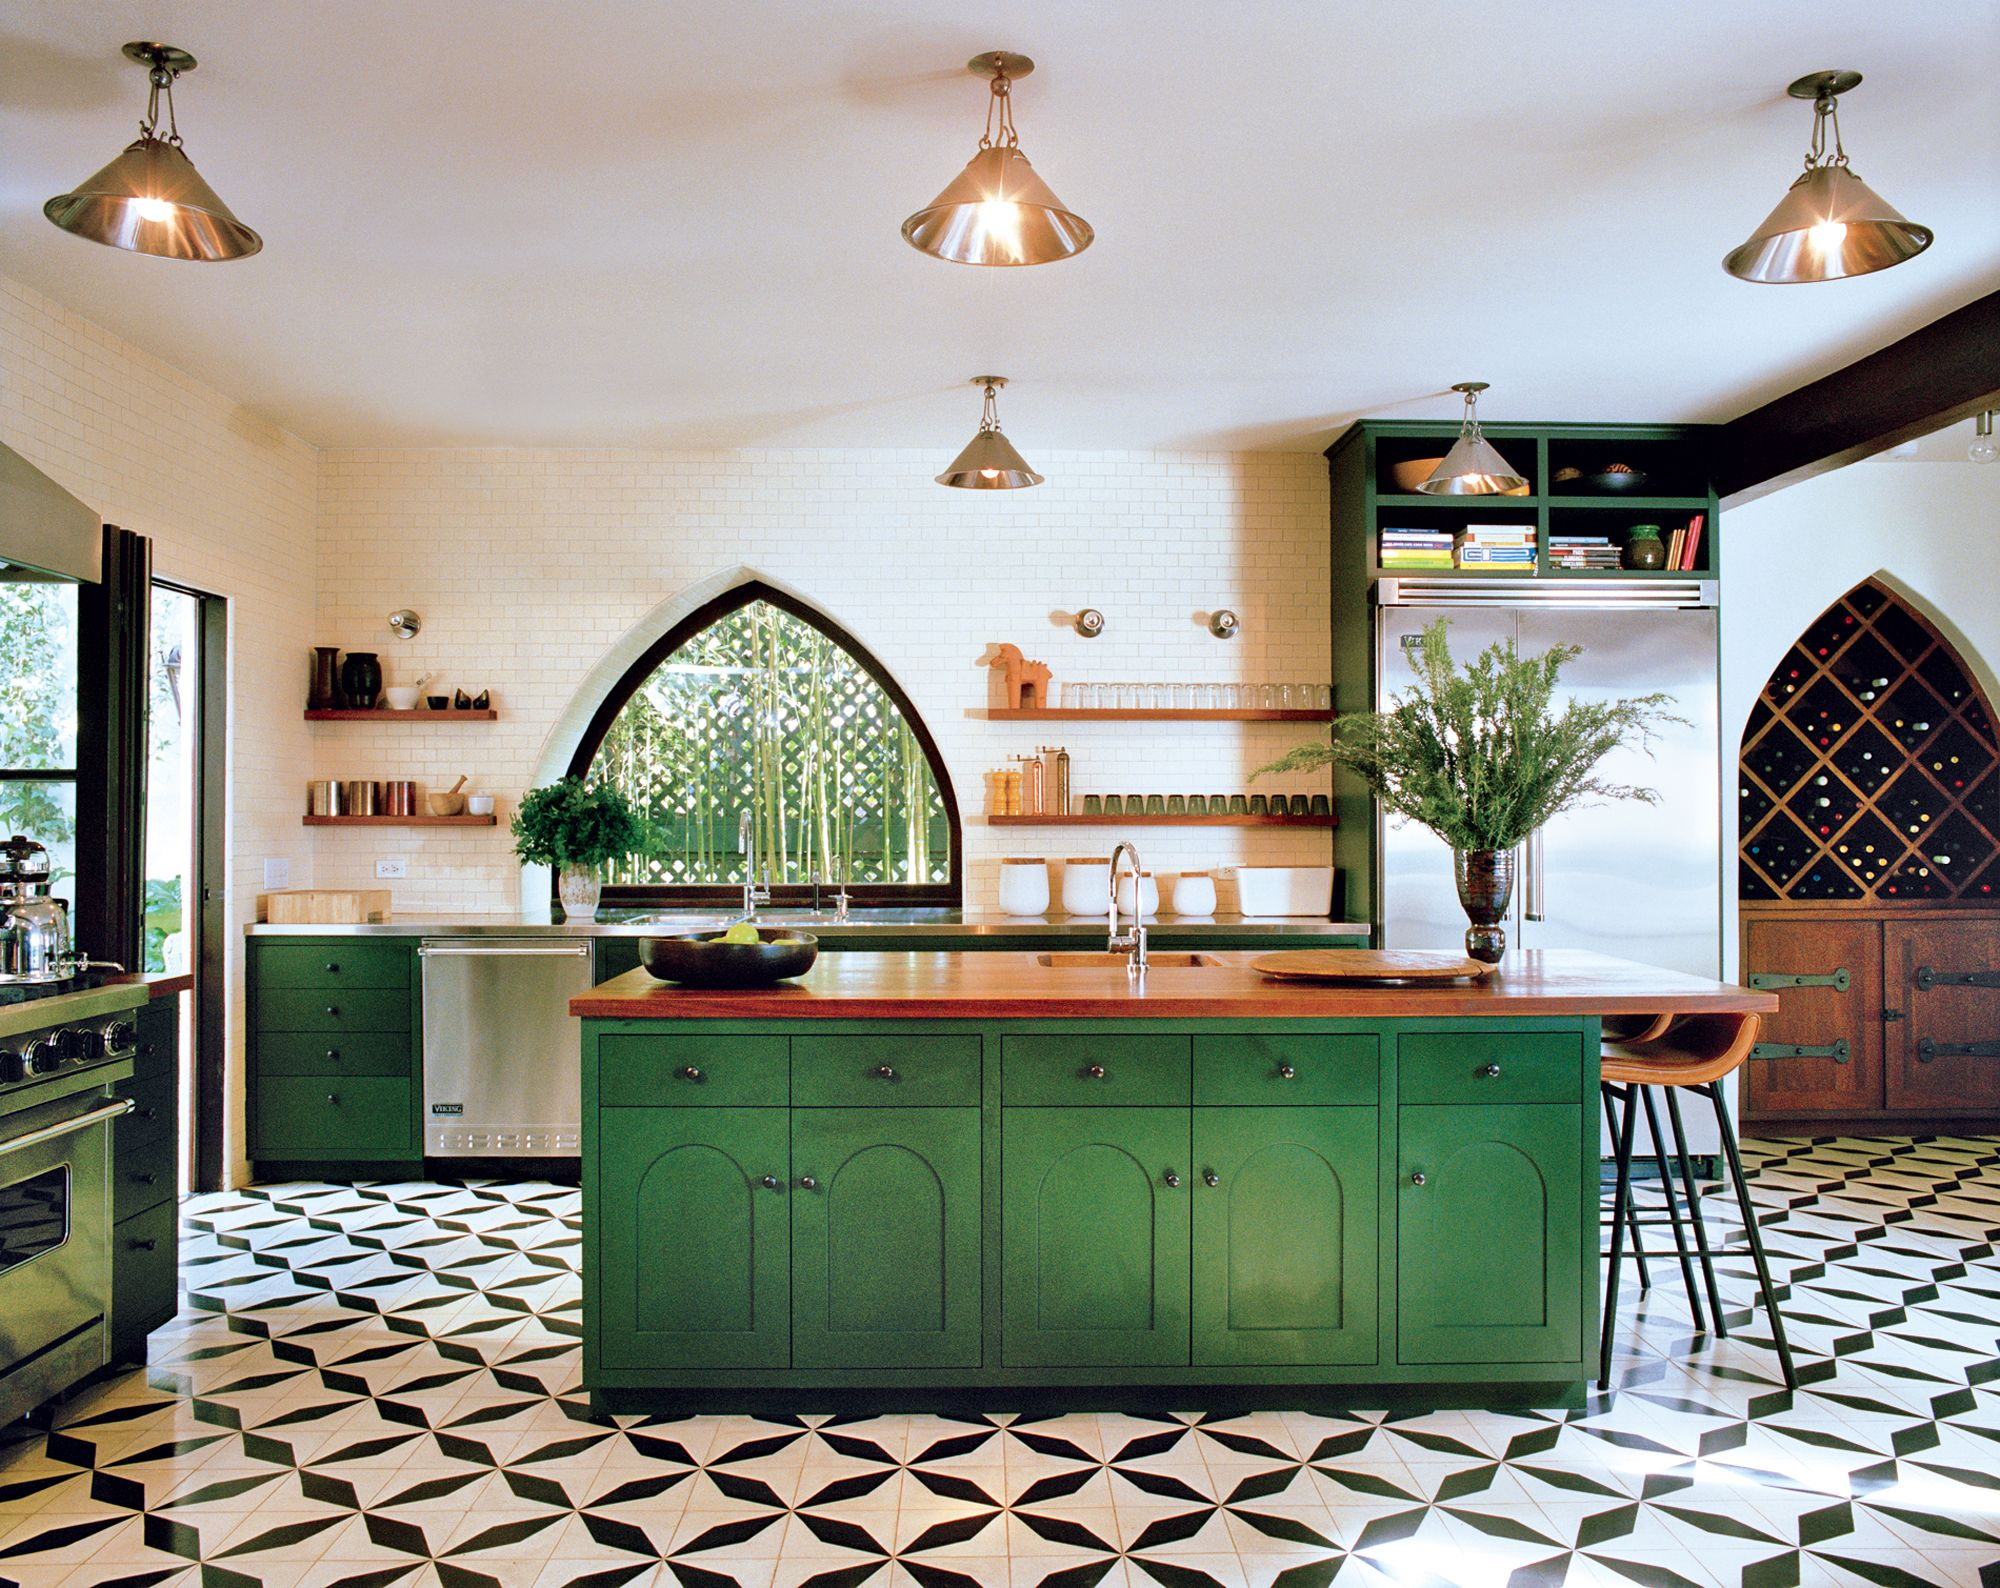 The Most Beautiful Kitchen The 32 Most Beautiful Kitchens In Homes Moroccan